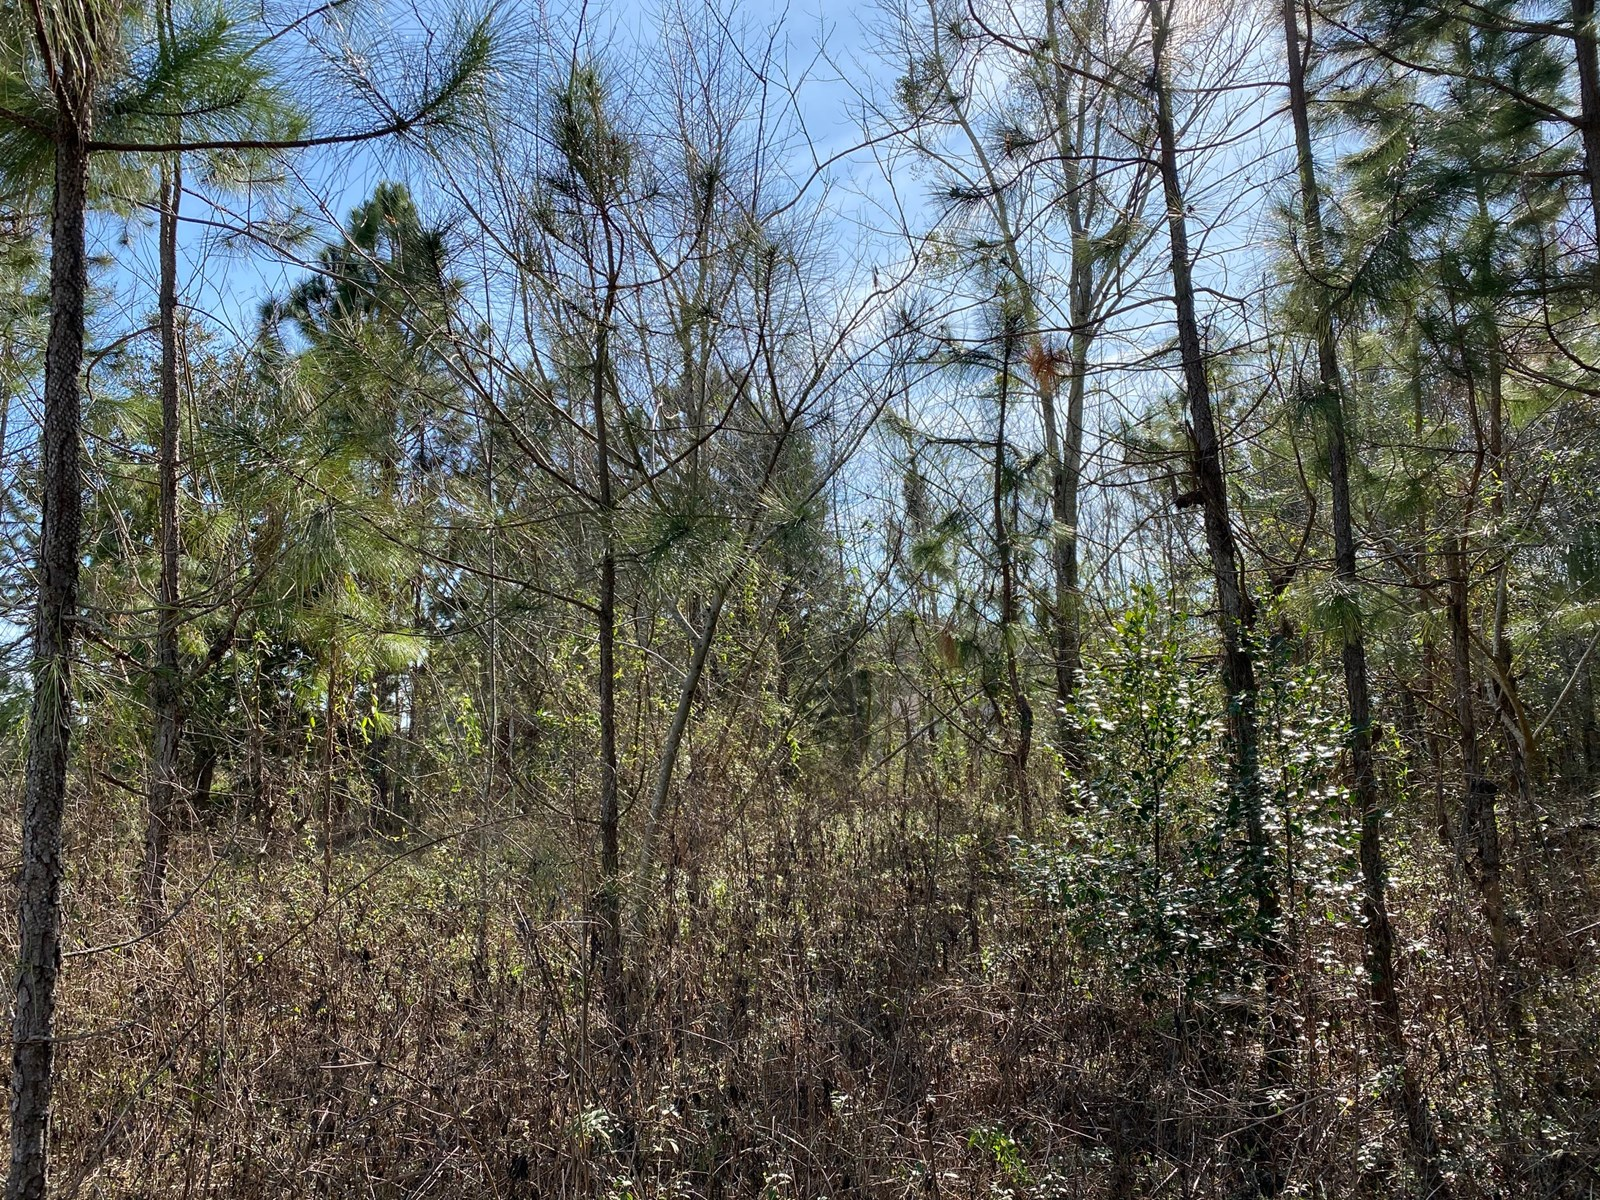 LOT 7 & 8 OF SUWANNEE BREEZE SUBDIVISION